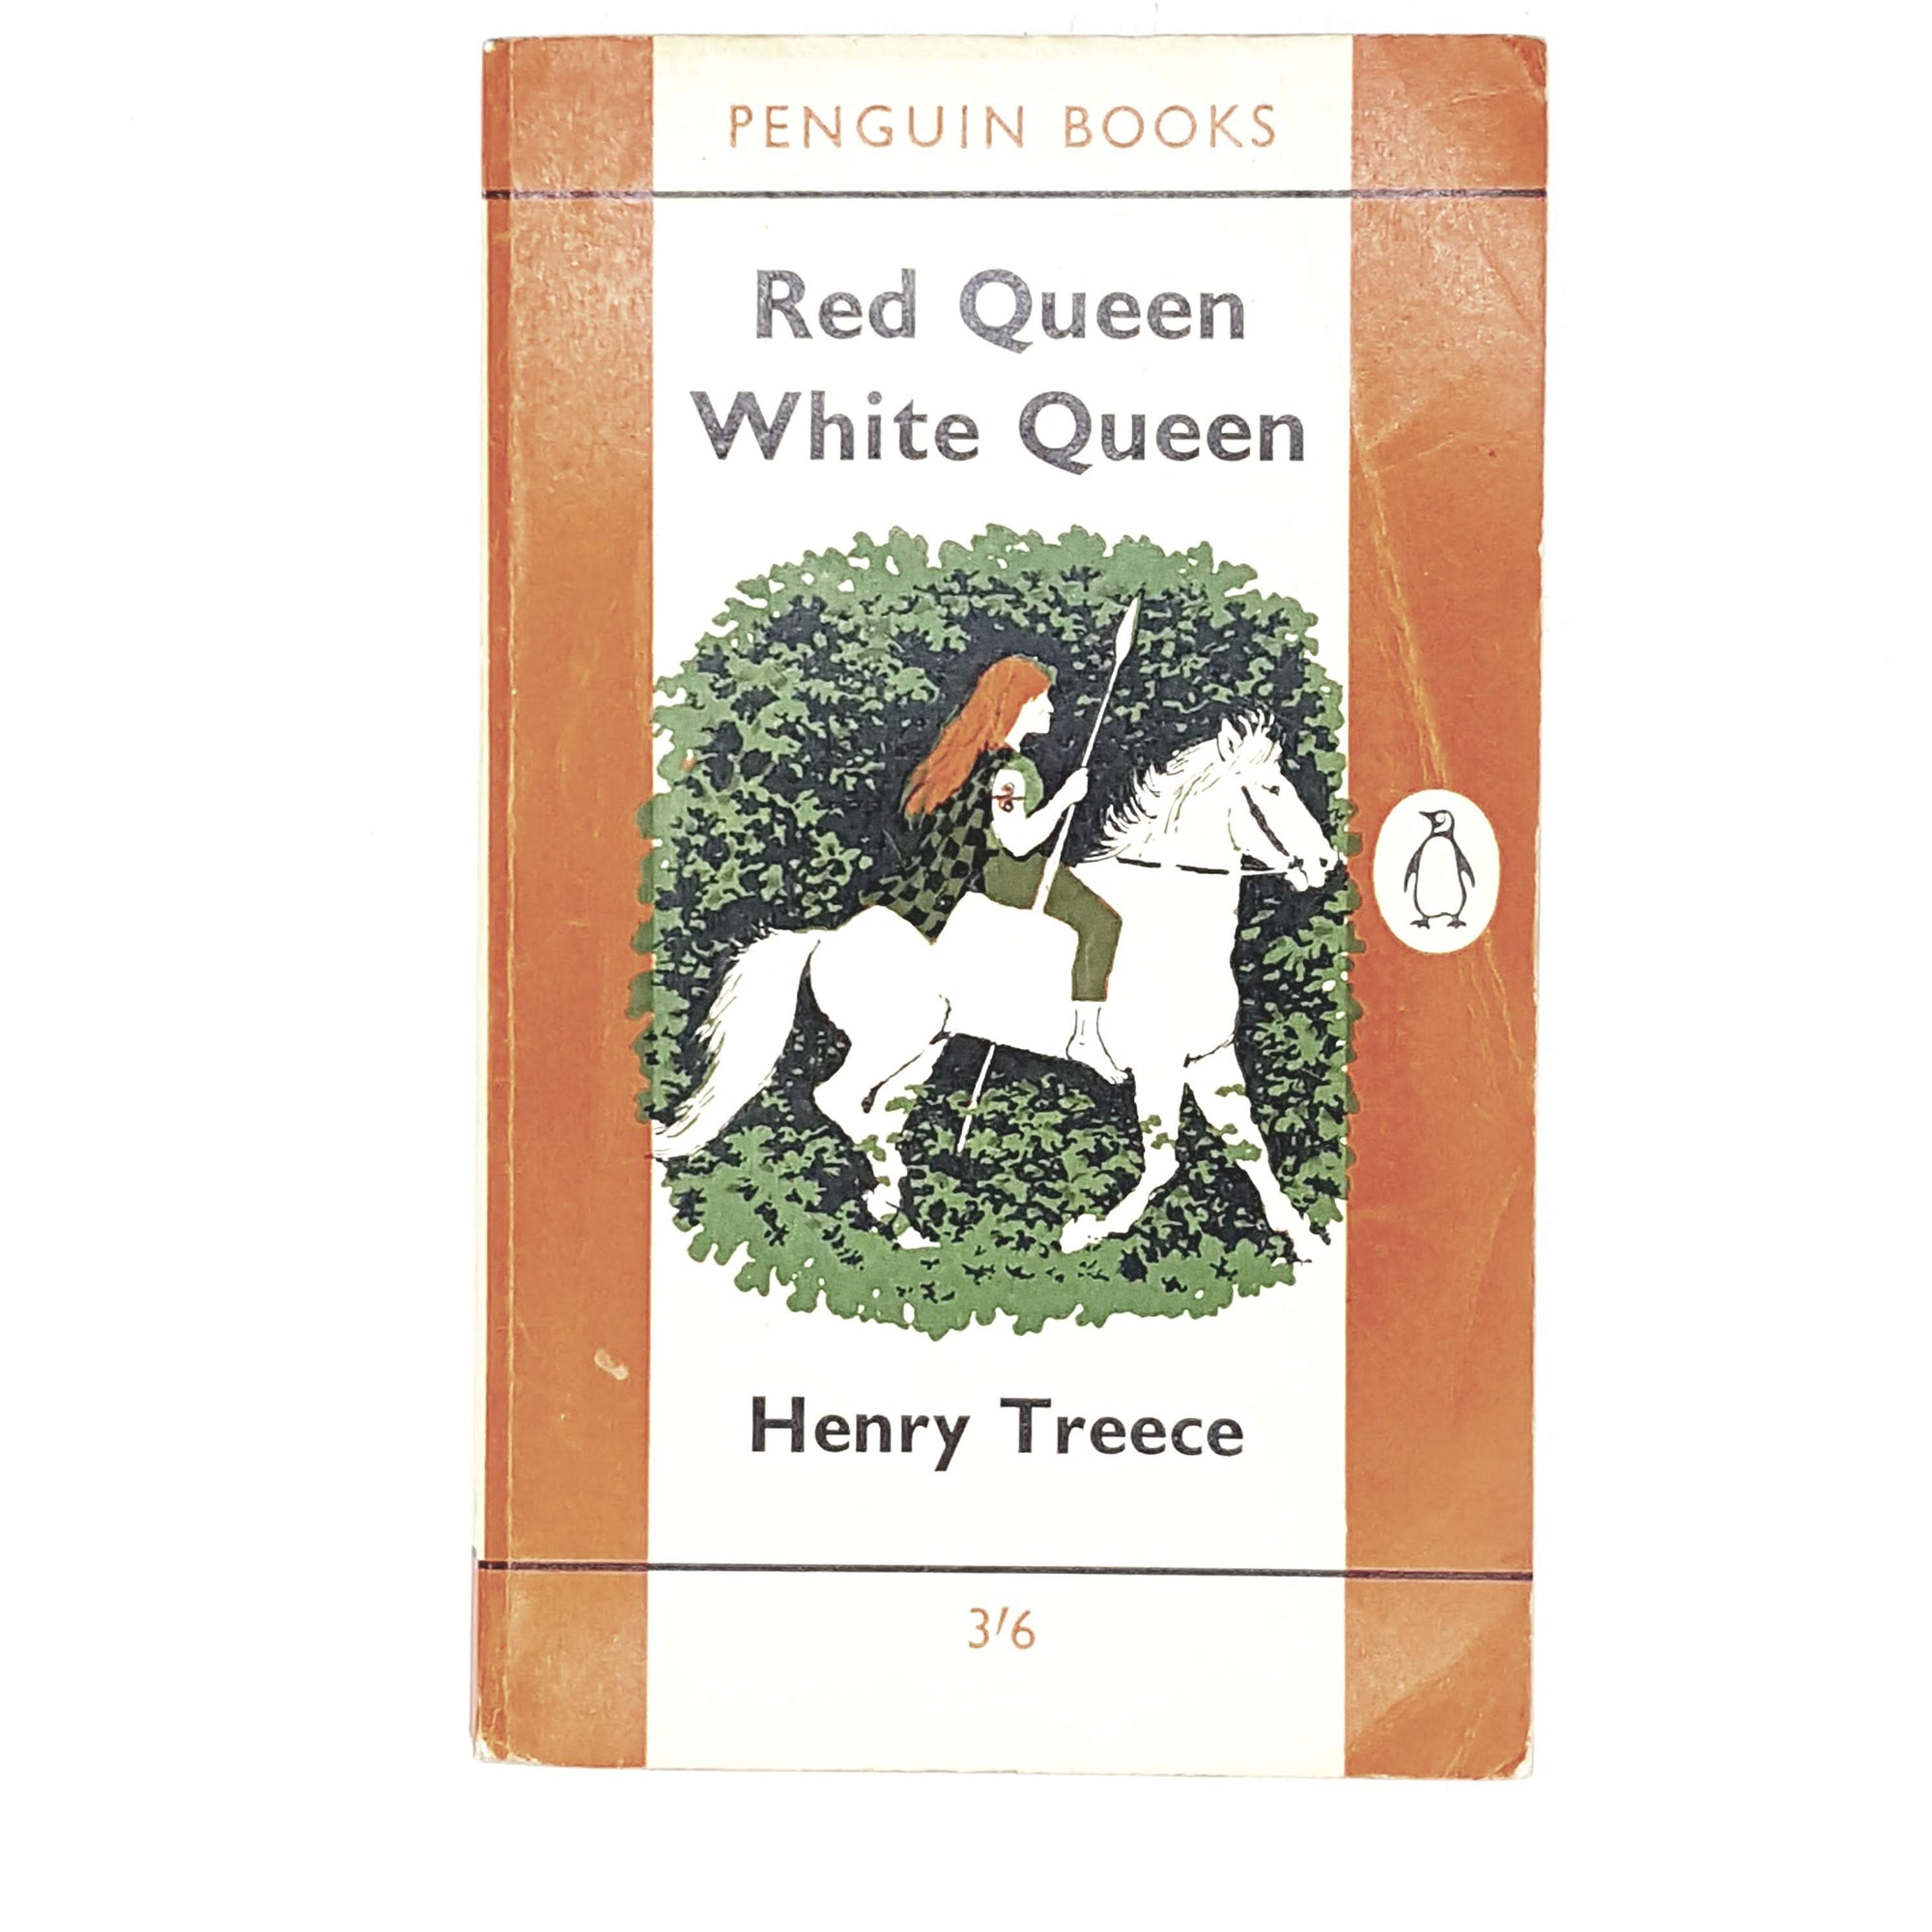 Vintage Penguin Red Queen White Queen by Henry Treece 1958